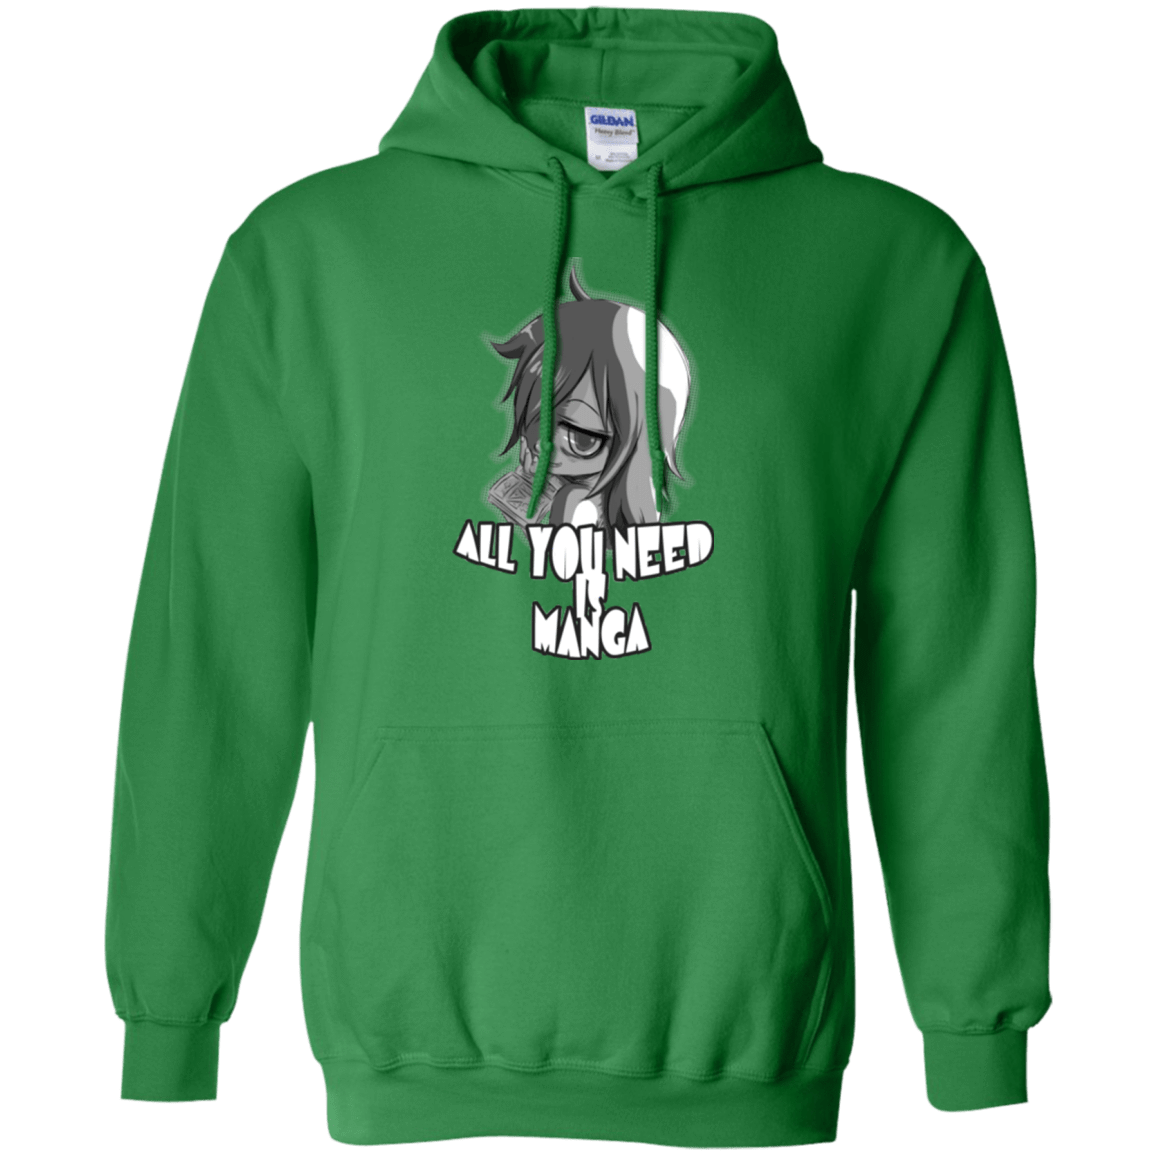 All You Need is Manga Pullover Hoodie